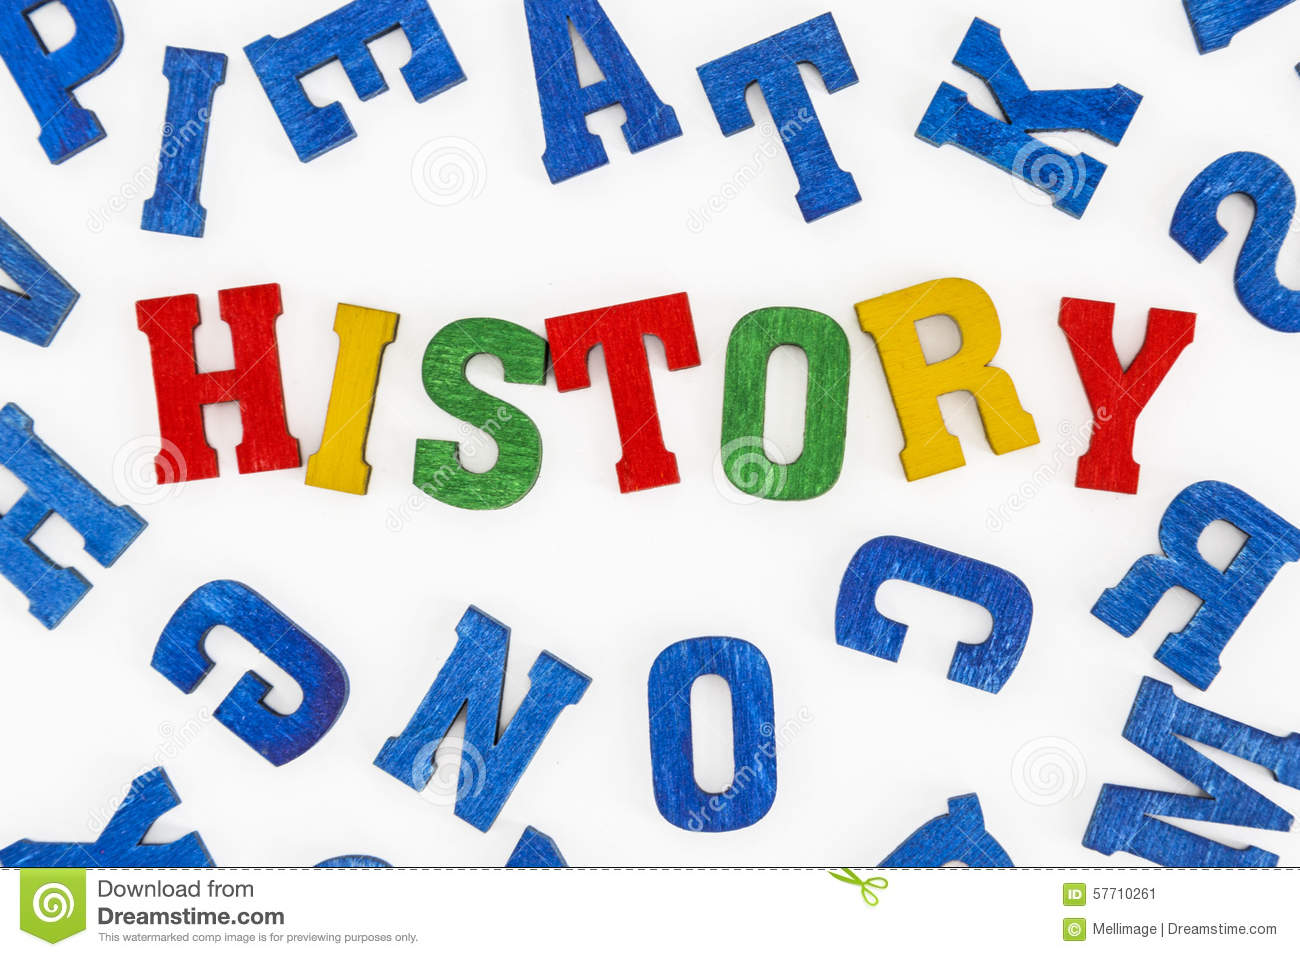 History what are subjects